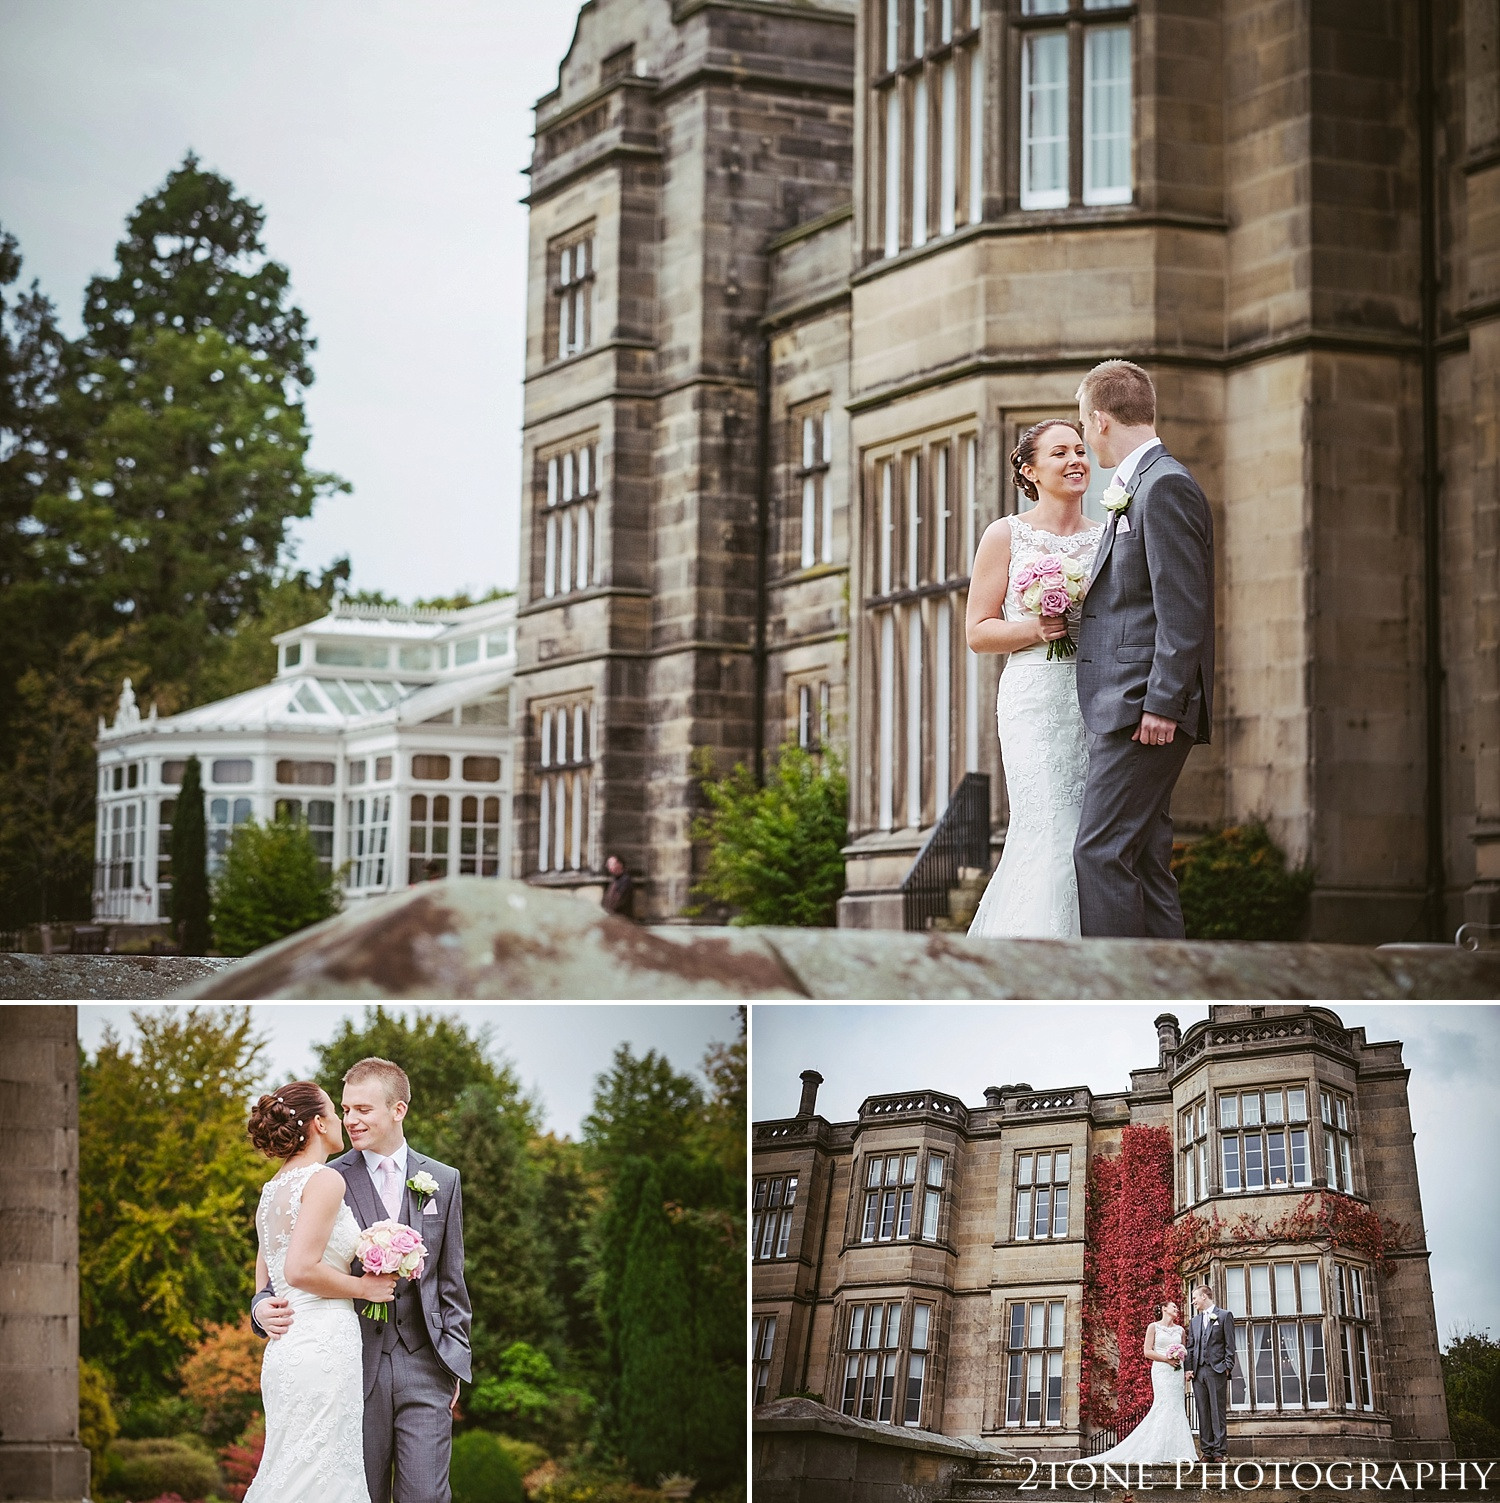 The bride and groom.  Matfen Hall by Durham based wedding photographers 2tone Photography www.2tonephotography.co.uk